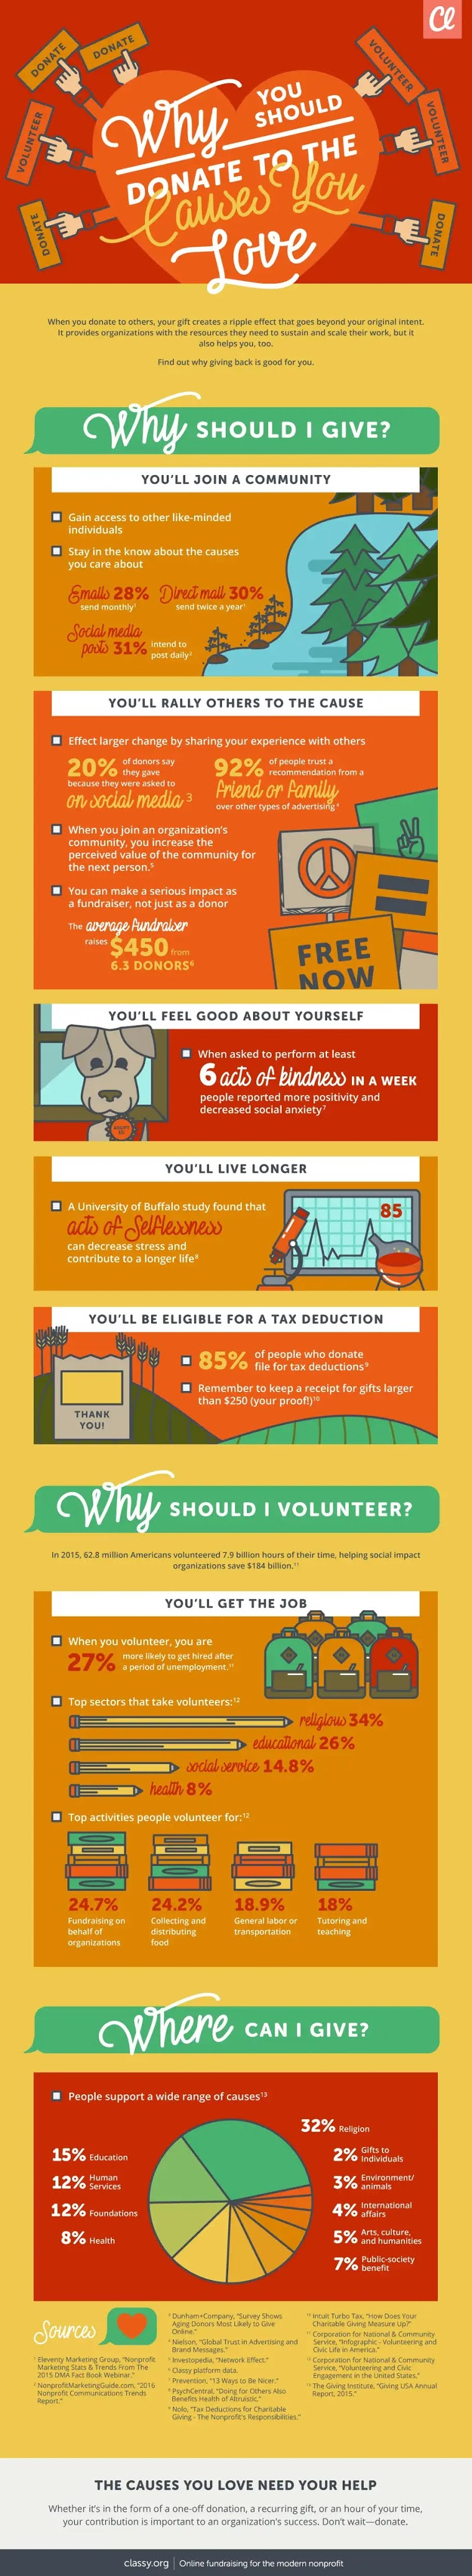 Why You Should Donate to the Causes You Love #infographic #Fundraising #infographics #Love #Donate